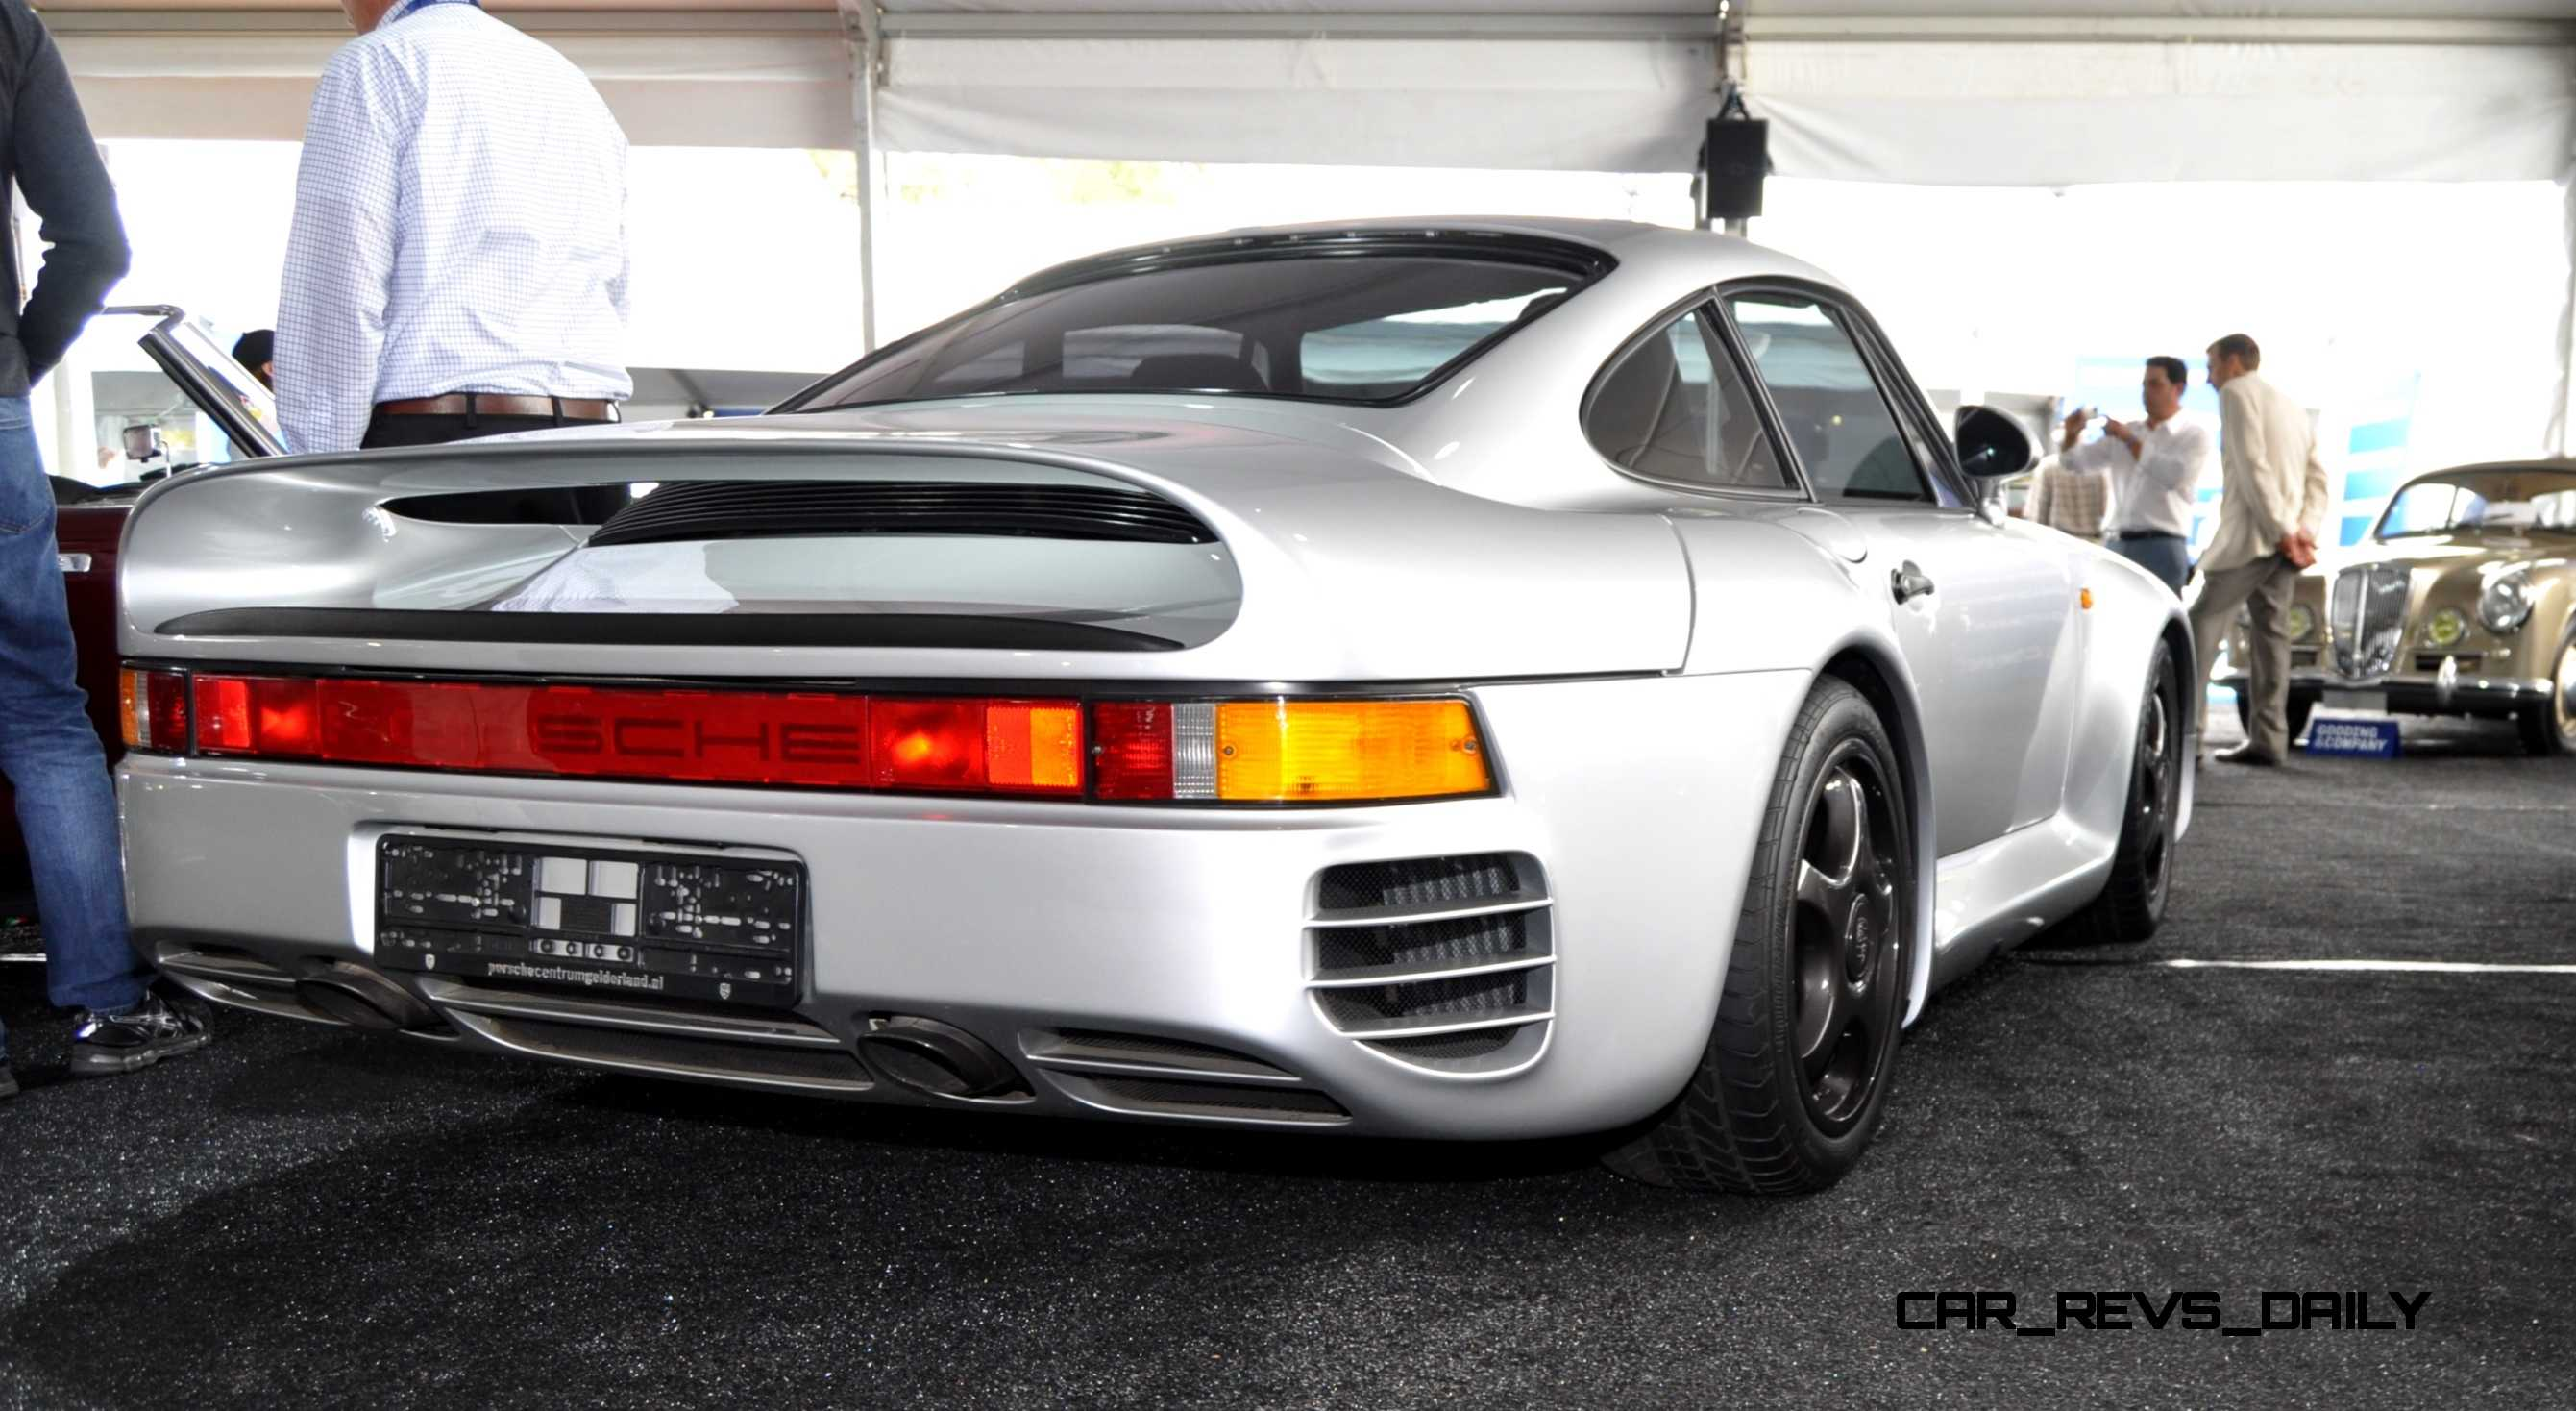 Porsche 959 For Sale >> 1988 Porsche 959 Komfort Gooding 2014